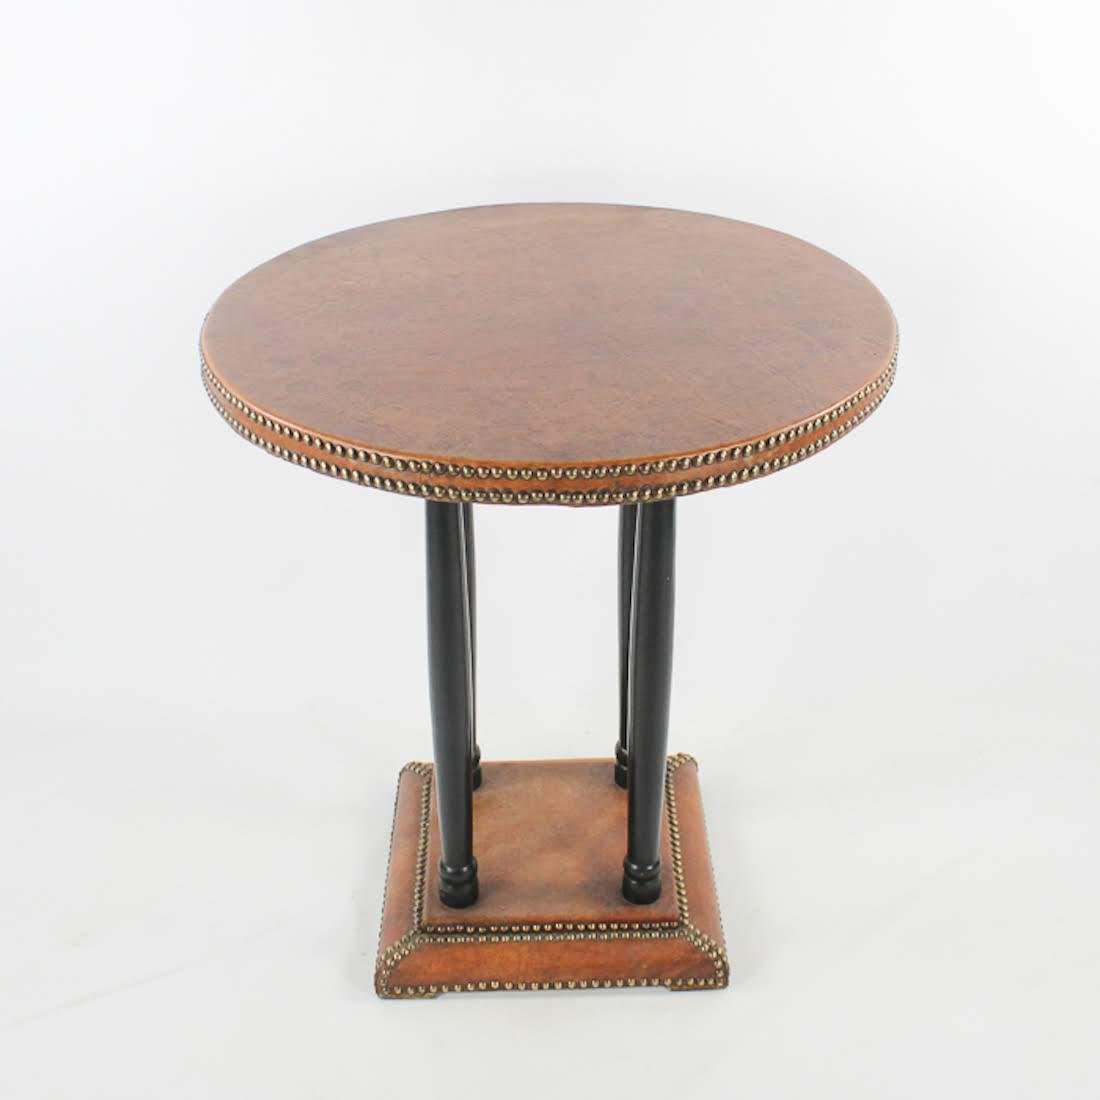 Antique French Leather Round Side Table